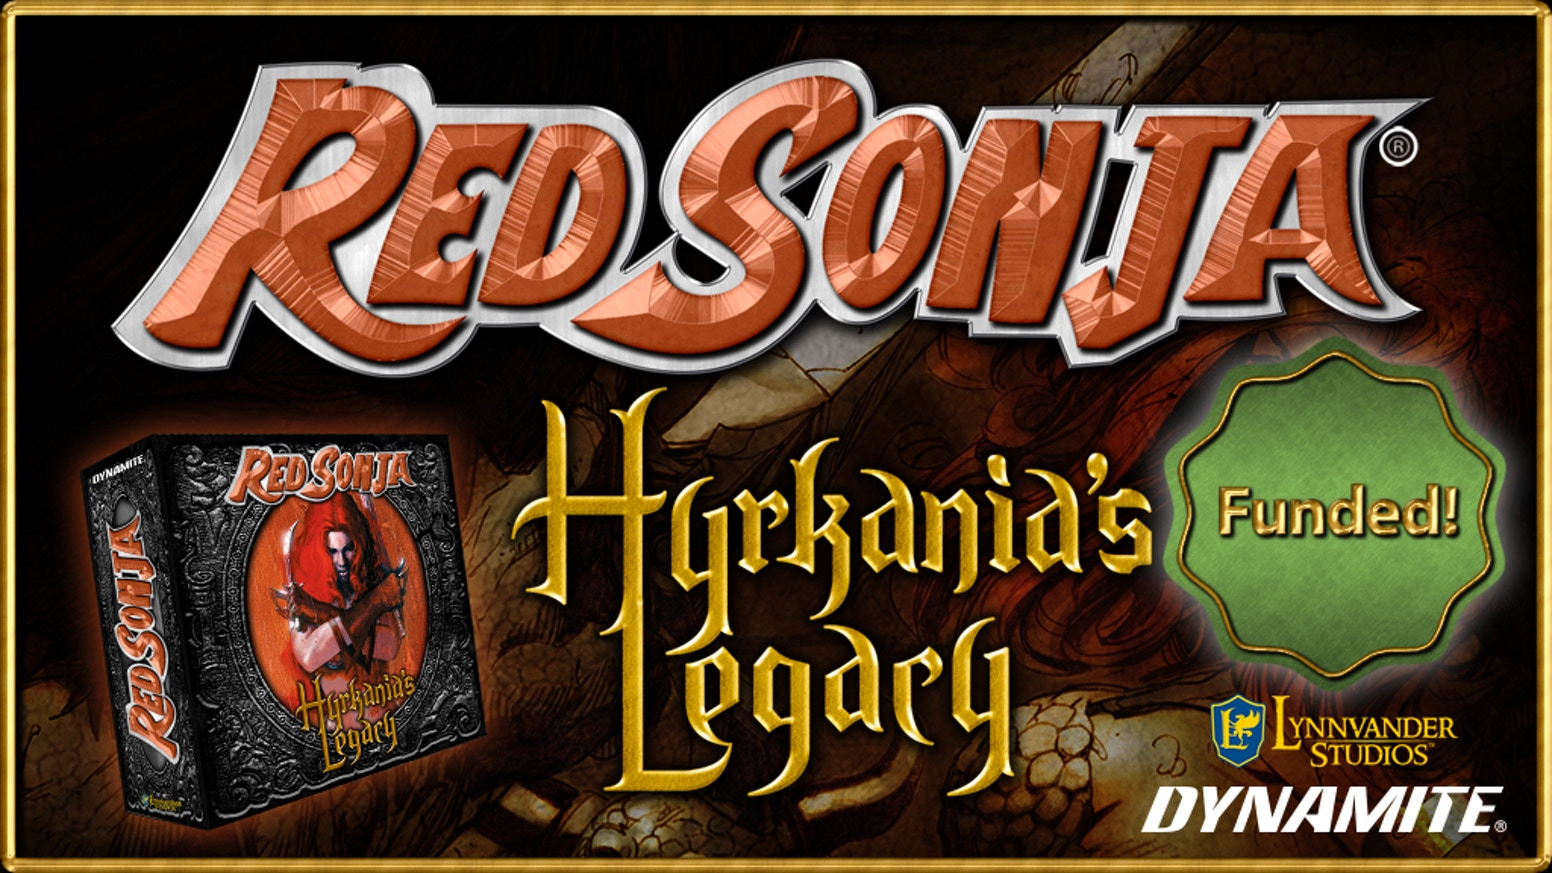 A cooperative fantasy adventure game for up to 4 players based on the Red Sonja comic books and the Legacy line of board games.